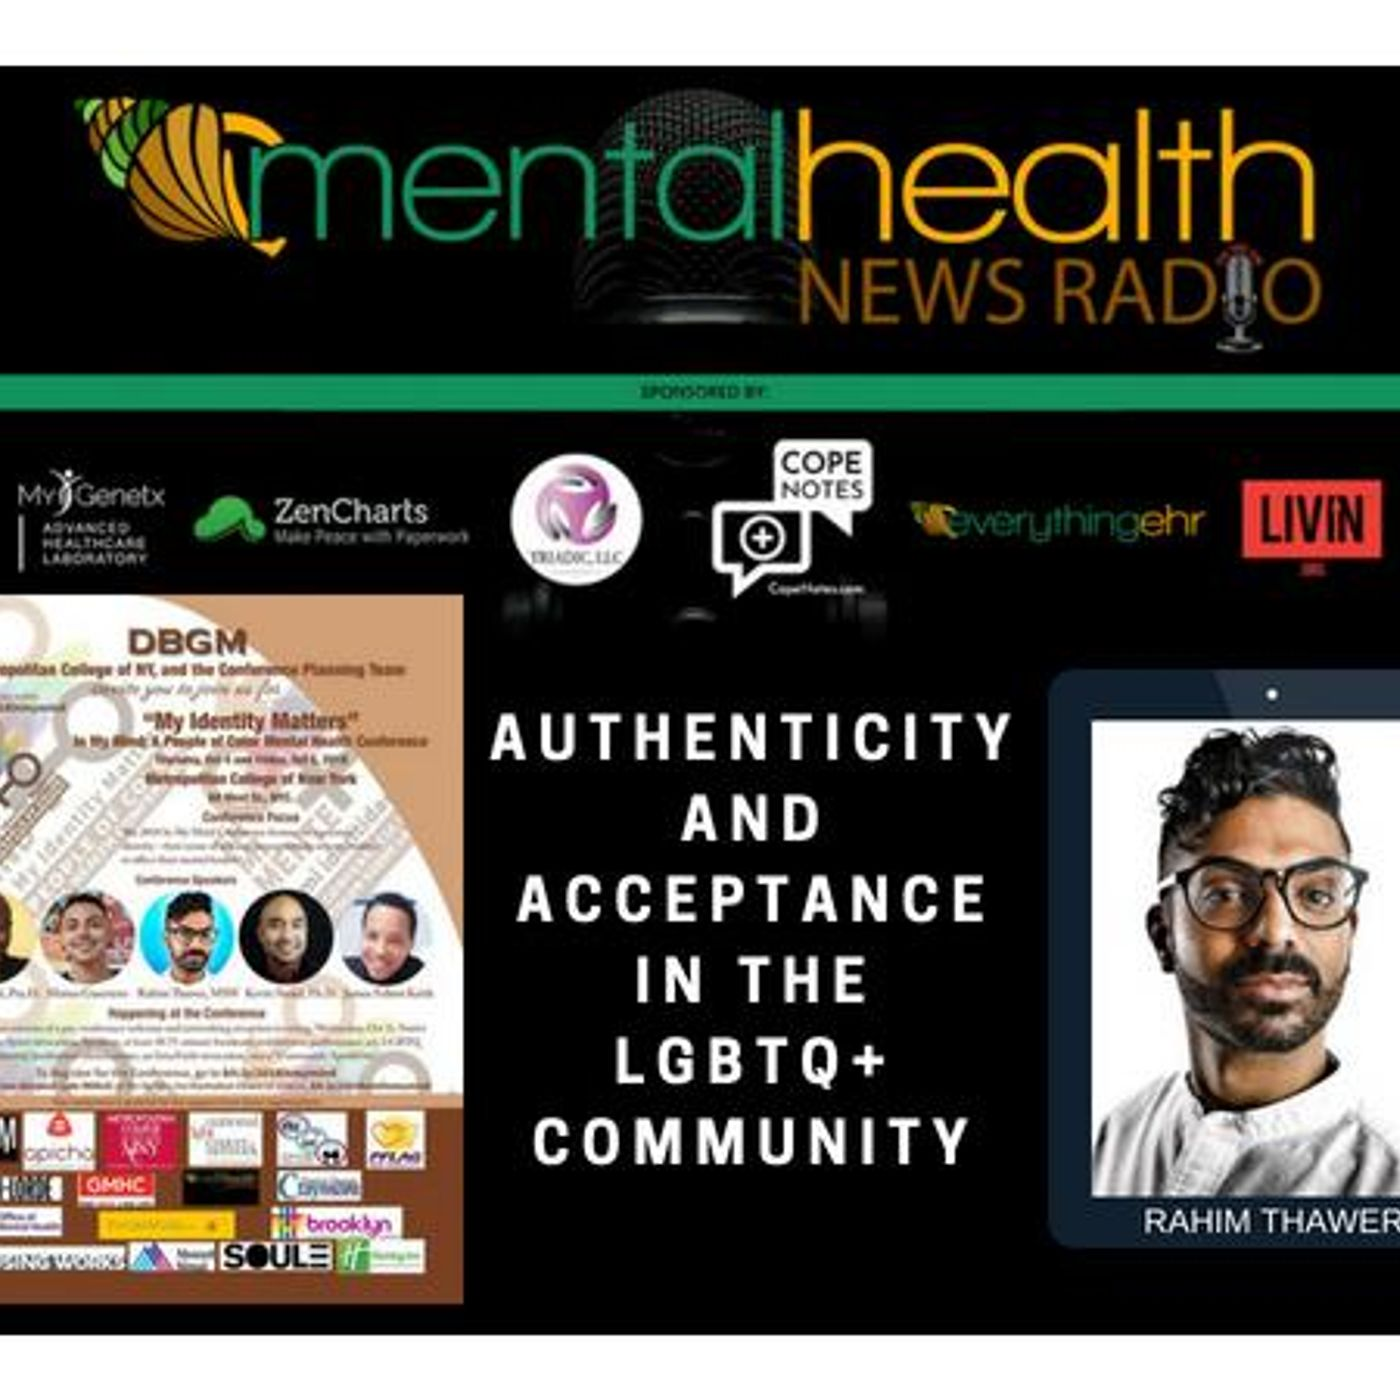 Mental Health News Radio - In My Mind: Authenticity and Acceptance in the LGBTQ Community with Rahim Thawer